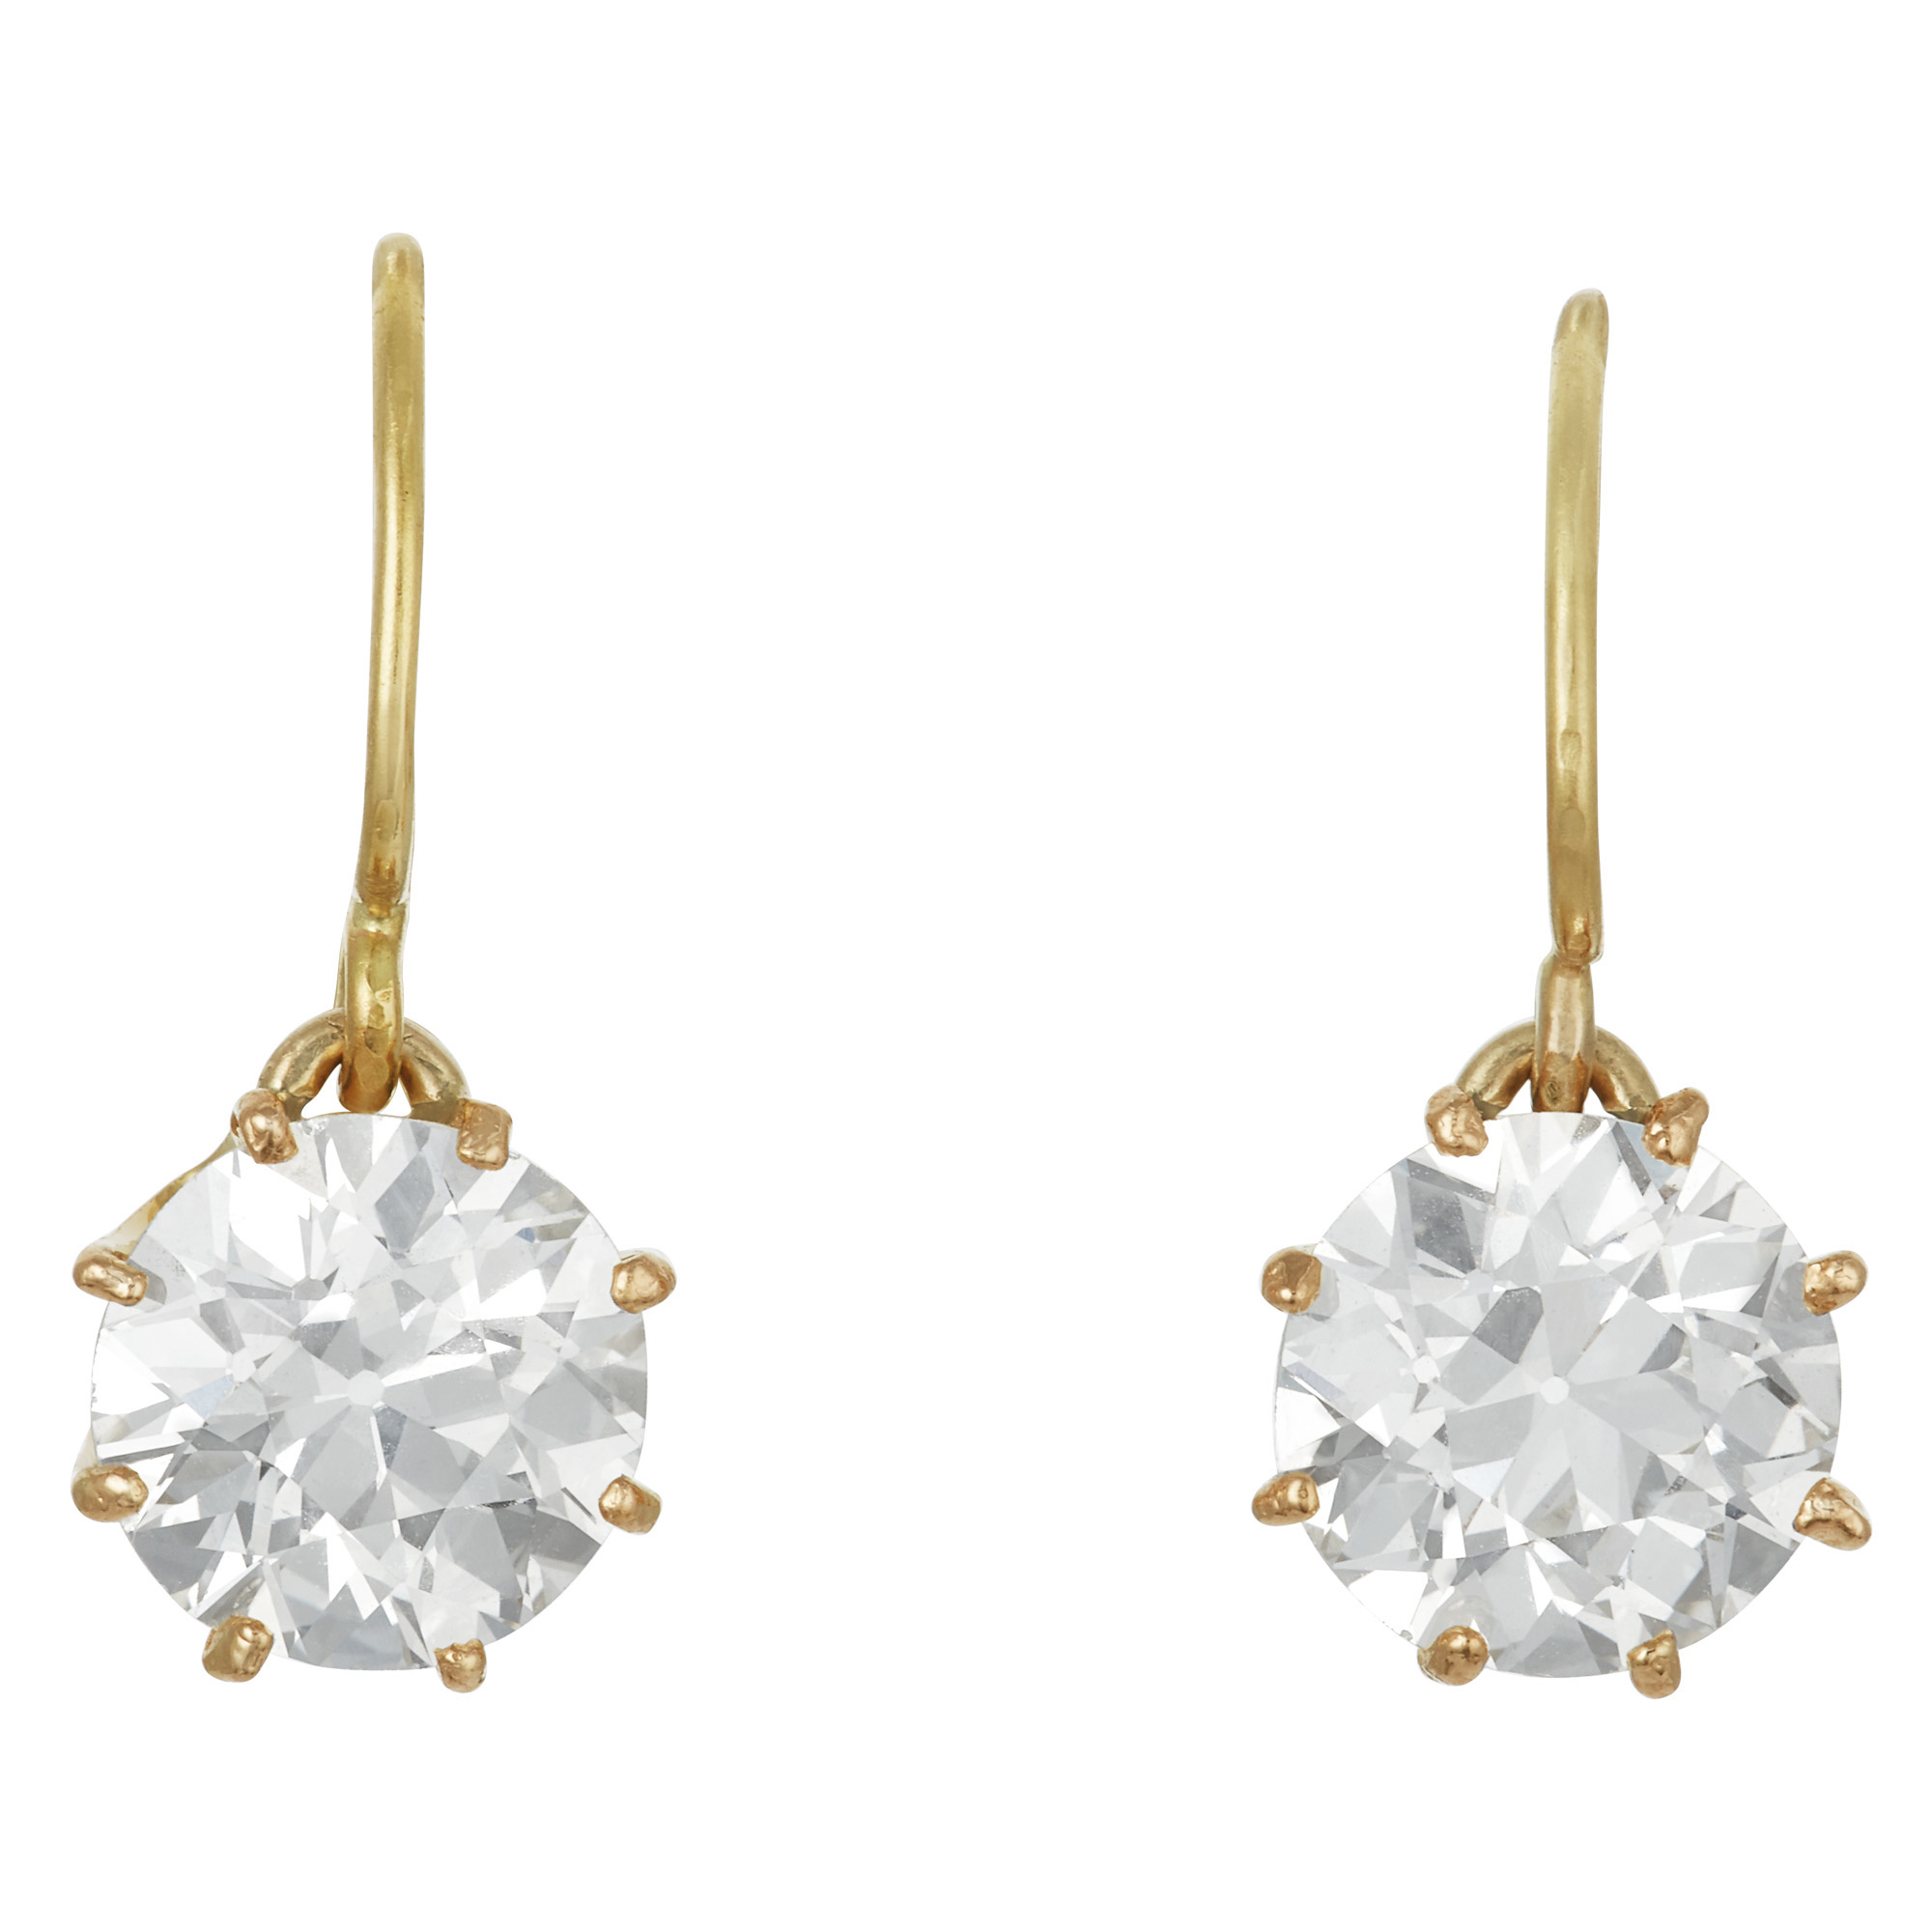 Lot image - Pair of Gold and Diamond Drop Earrings